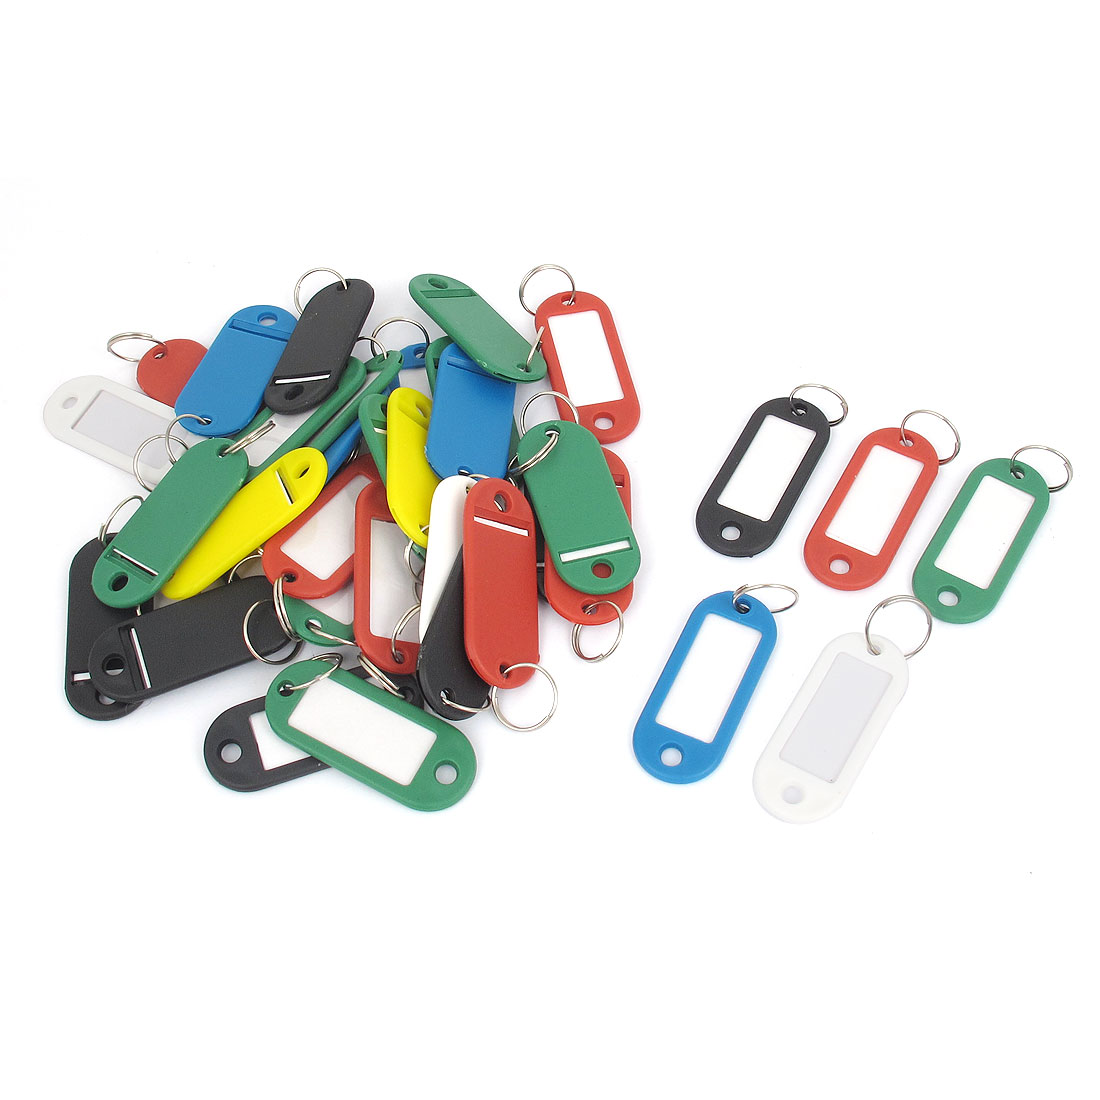 41pcs Assorted Color Plastic Luggage Fobs ID Label Name Key Badge Clip Holder Keyring